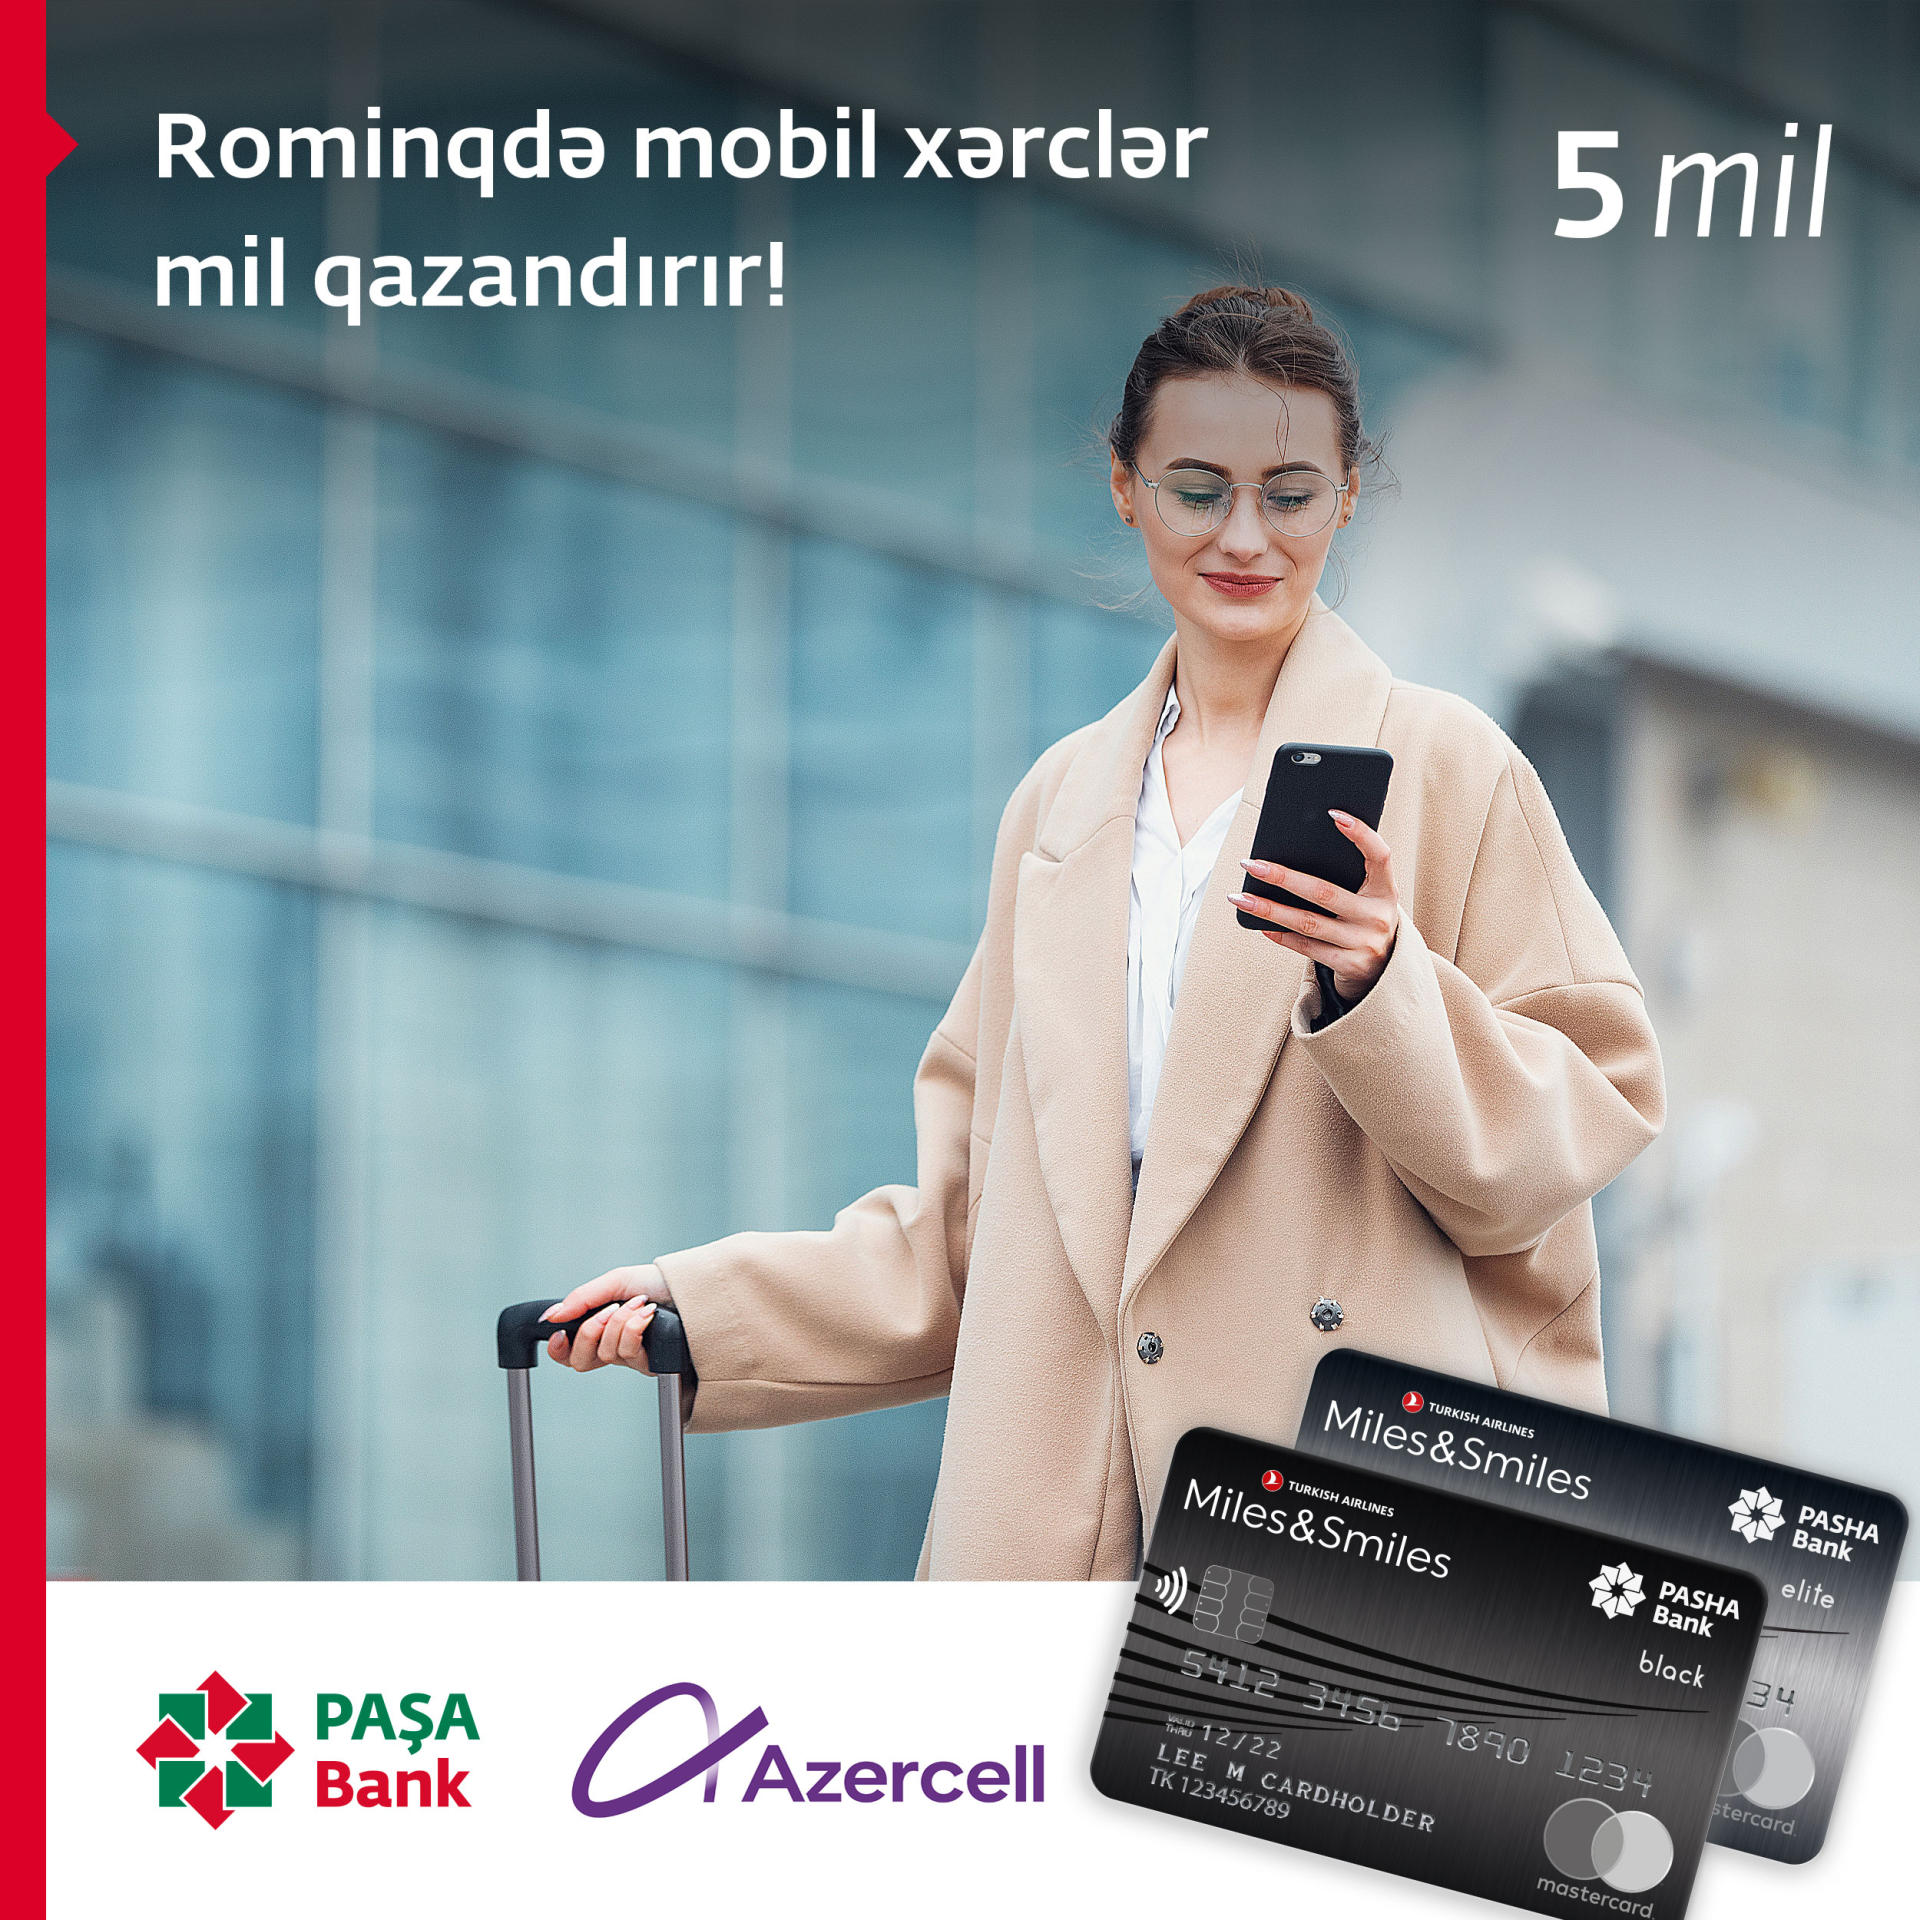 Earn miles with Azercell Roaming!